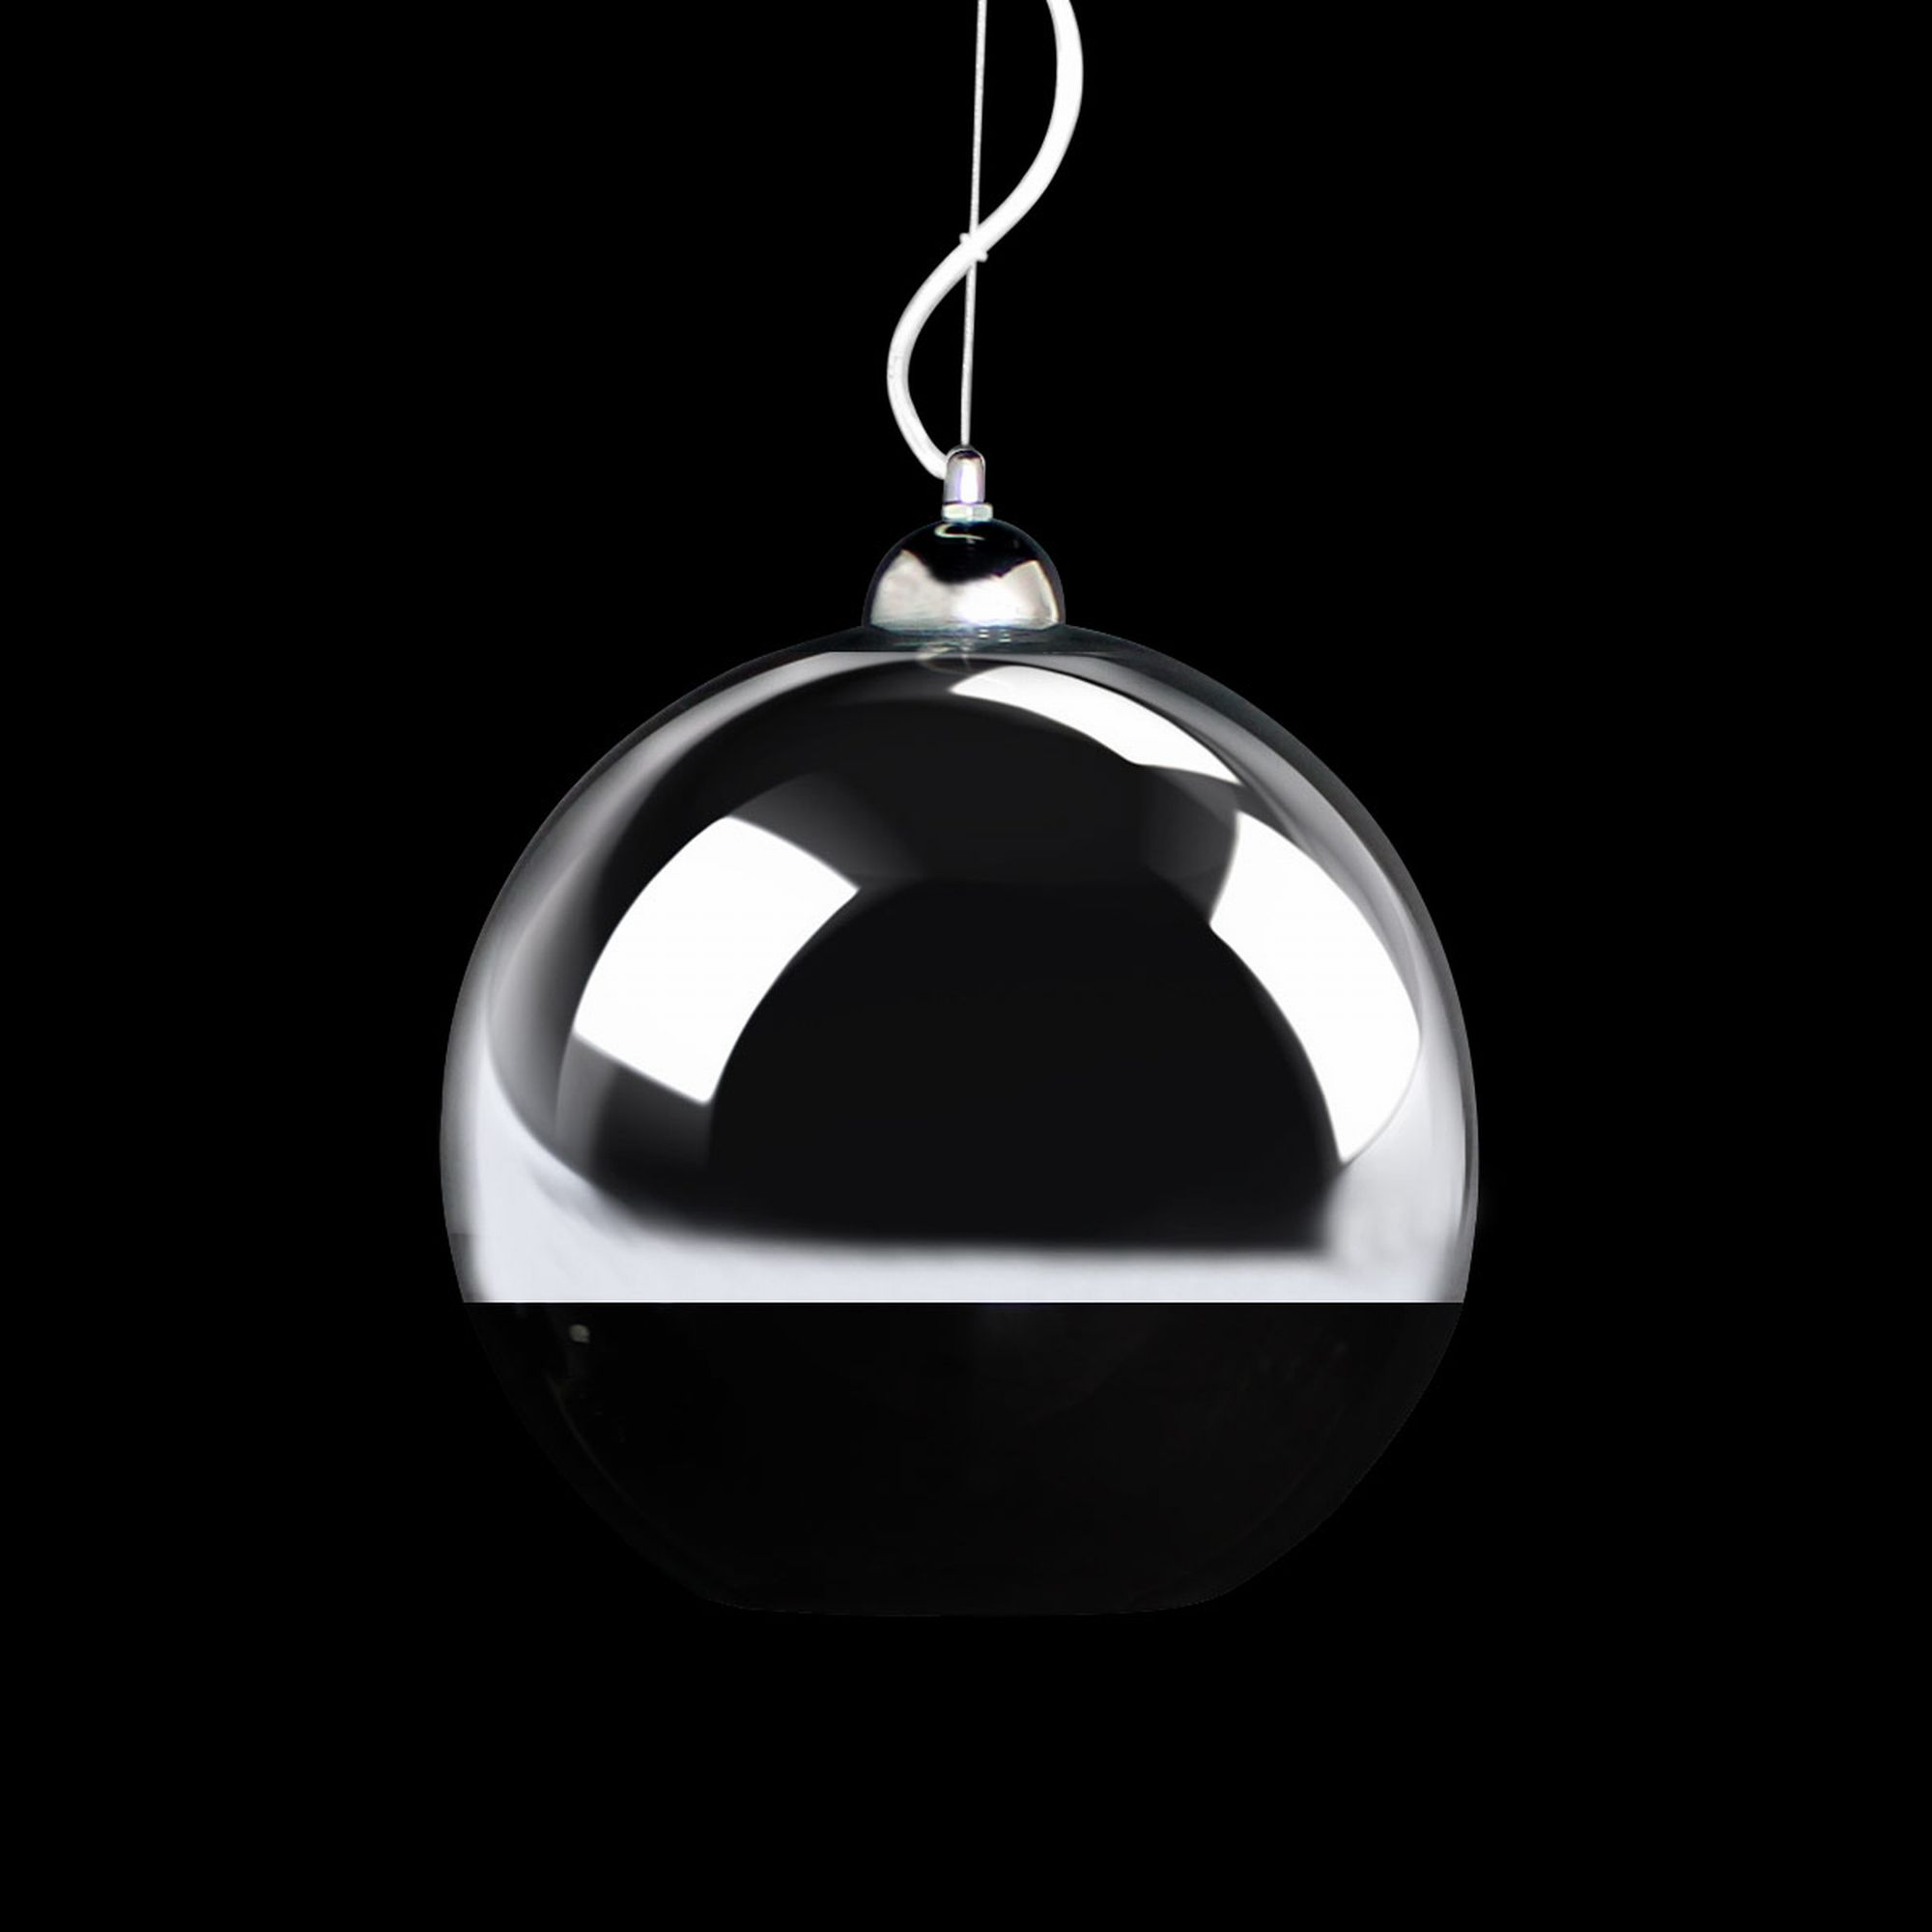 Ceiling Light LuxPro LED Glass Sphere Pendulum Hanging